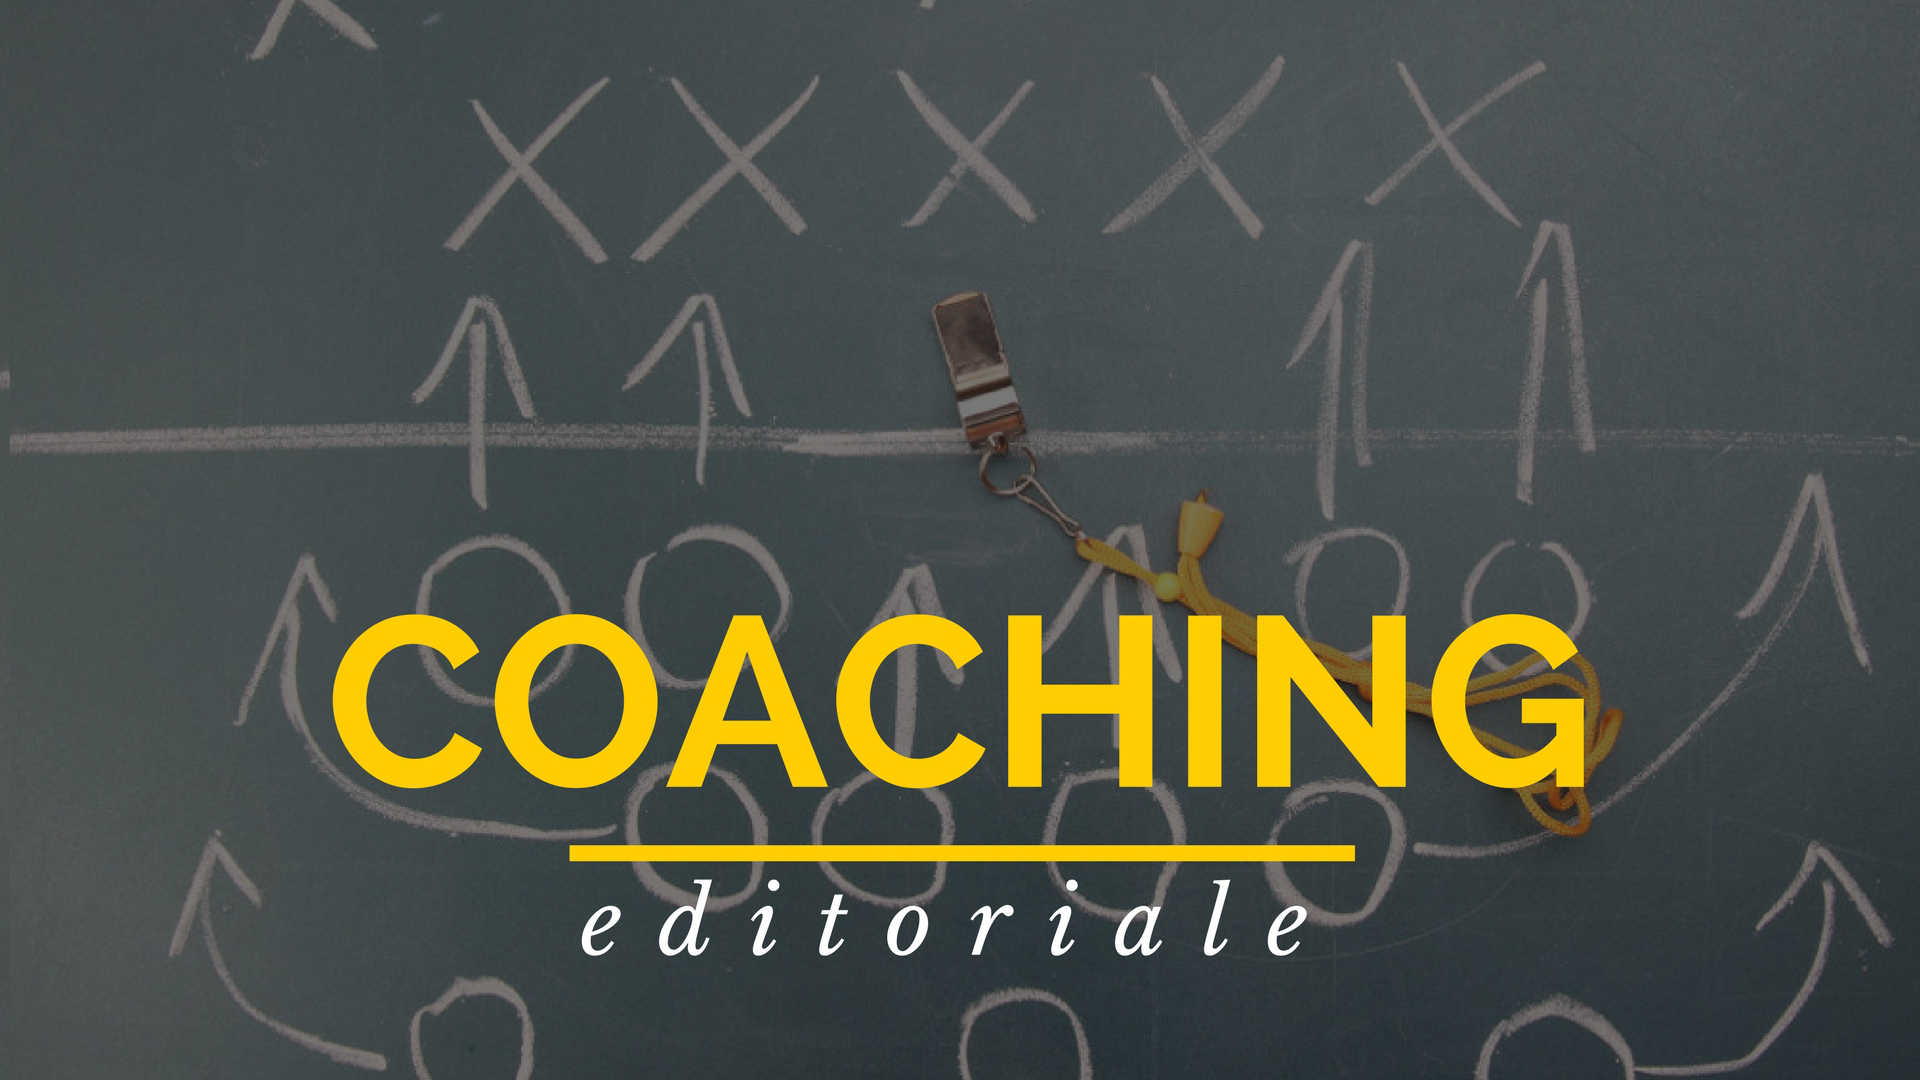 coaching editoriale